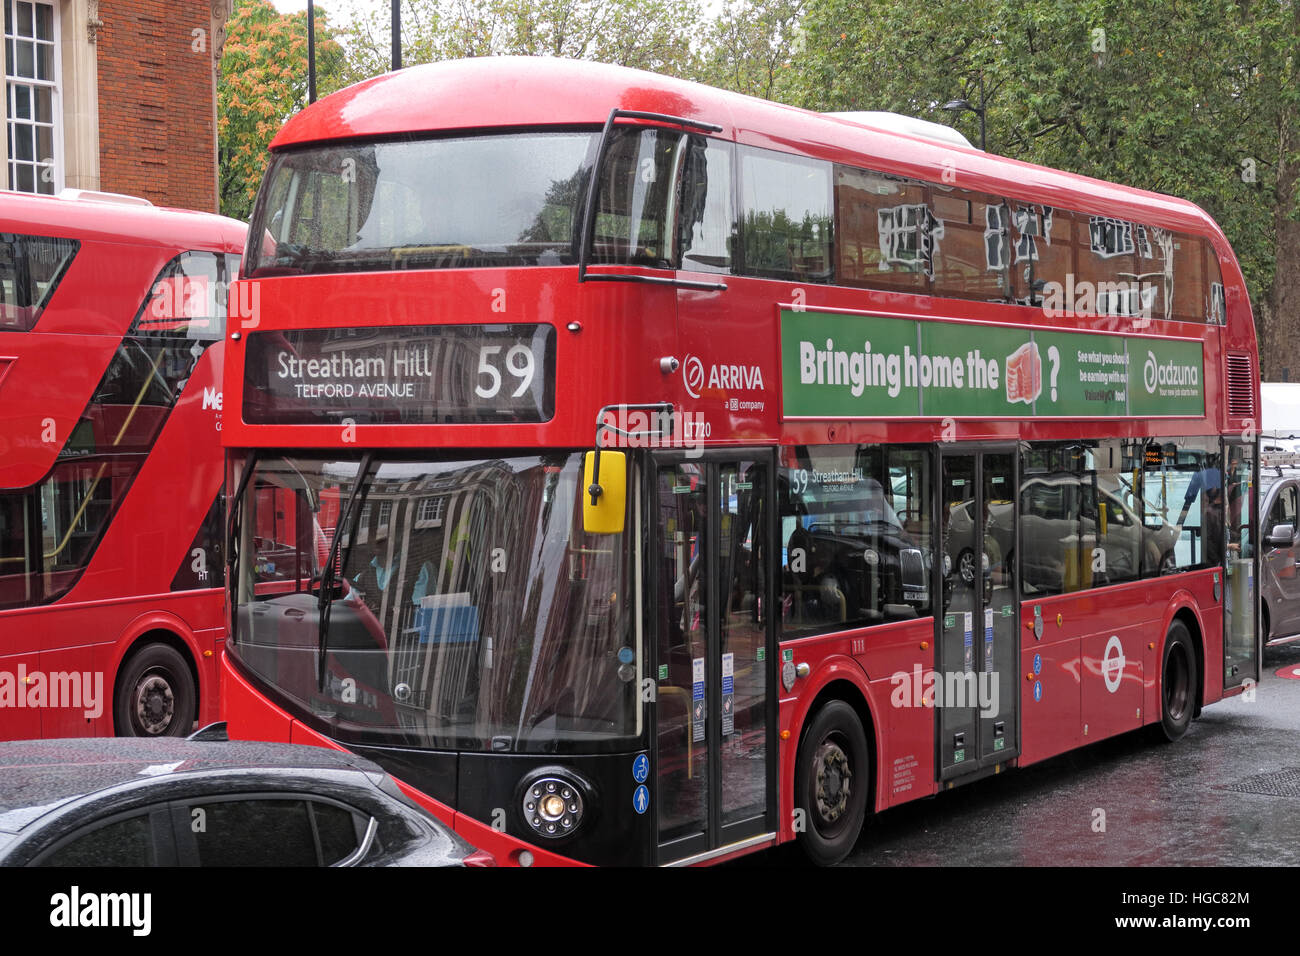 Hill,city,central,London,LDN,public,transport,transit,mass,private,privatised,regulated,deregulated,Boris,AEC,doors,door,London red bus,Red Routemaster,59 Streatham Hill,Streatham Hill,Public Transport,mass transit,New Bus for London,Boris Bus,AEC Routemaster,Heatherwick Studio,GoTonySmith,@HotpixUK,Tony,Smith,UK,GB,Great,Britain,United,Kingdom,English,British,England,problem,with,problem with,issue with,Buy Pictures of,Buy Images Of,Images of,Stock Images,Tony Smith,United Kingdom,Great Britain,British Isles